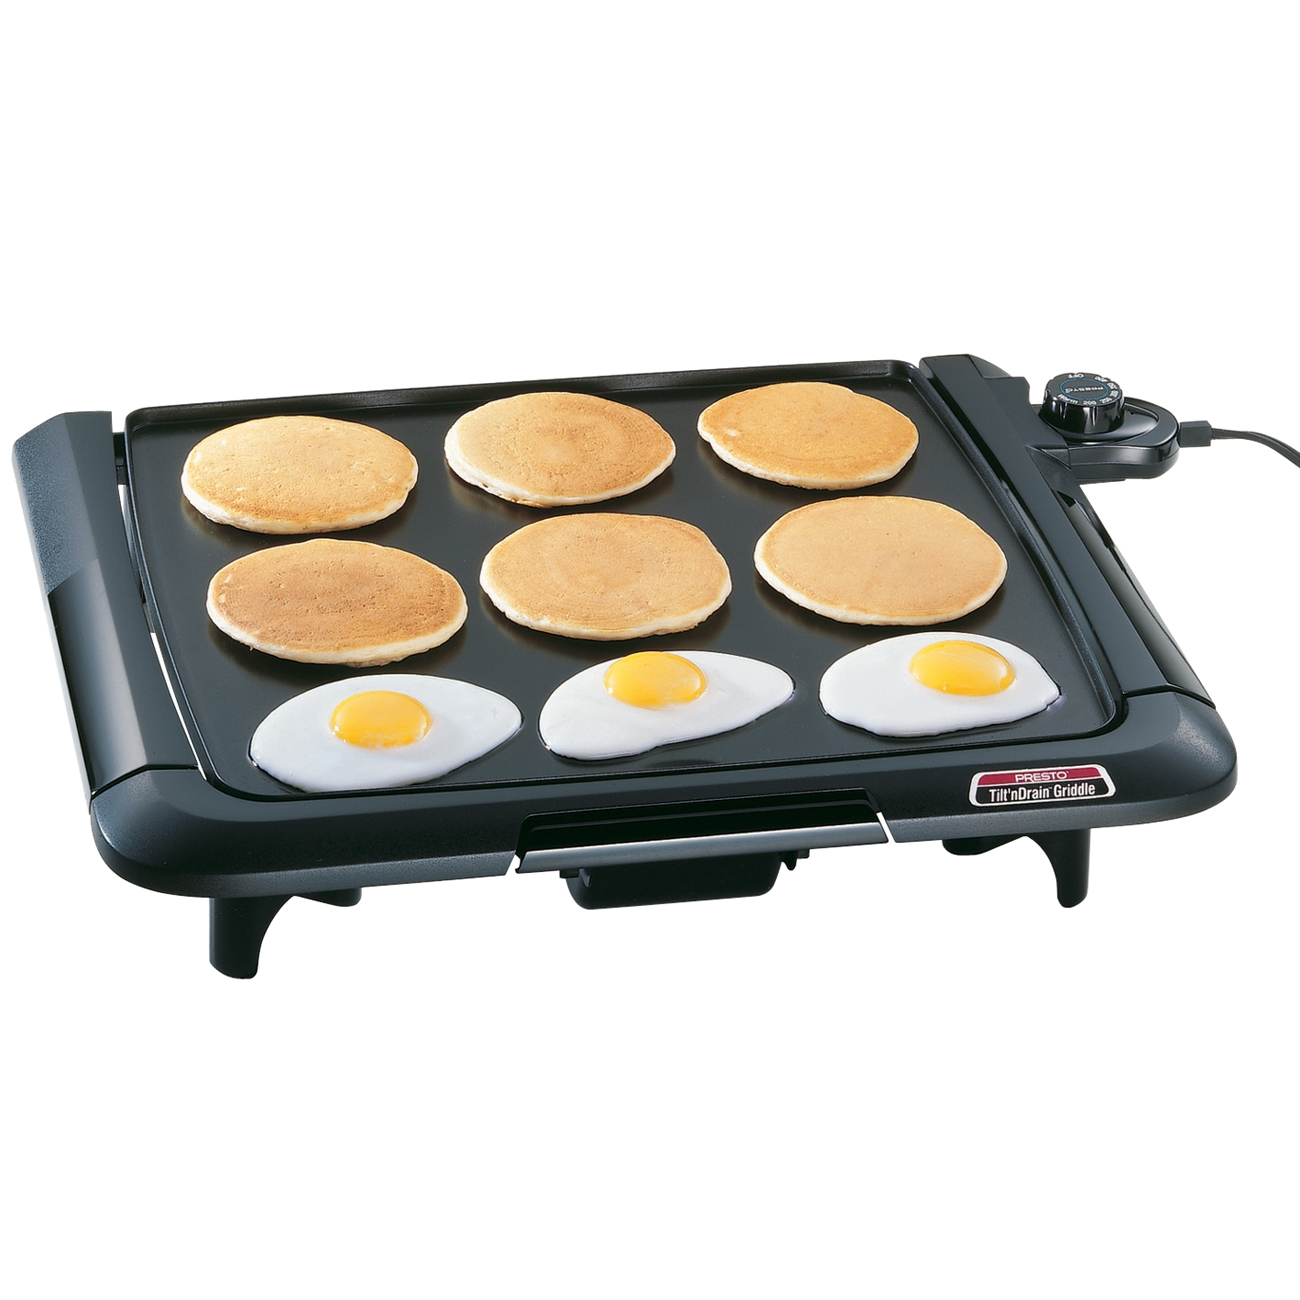 Presto 07045 Cool Touch Electric Tilt 'n' Drain Griddle